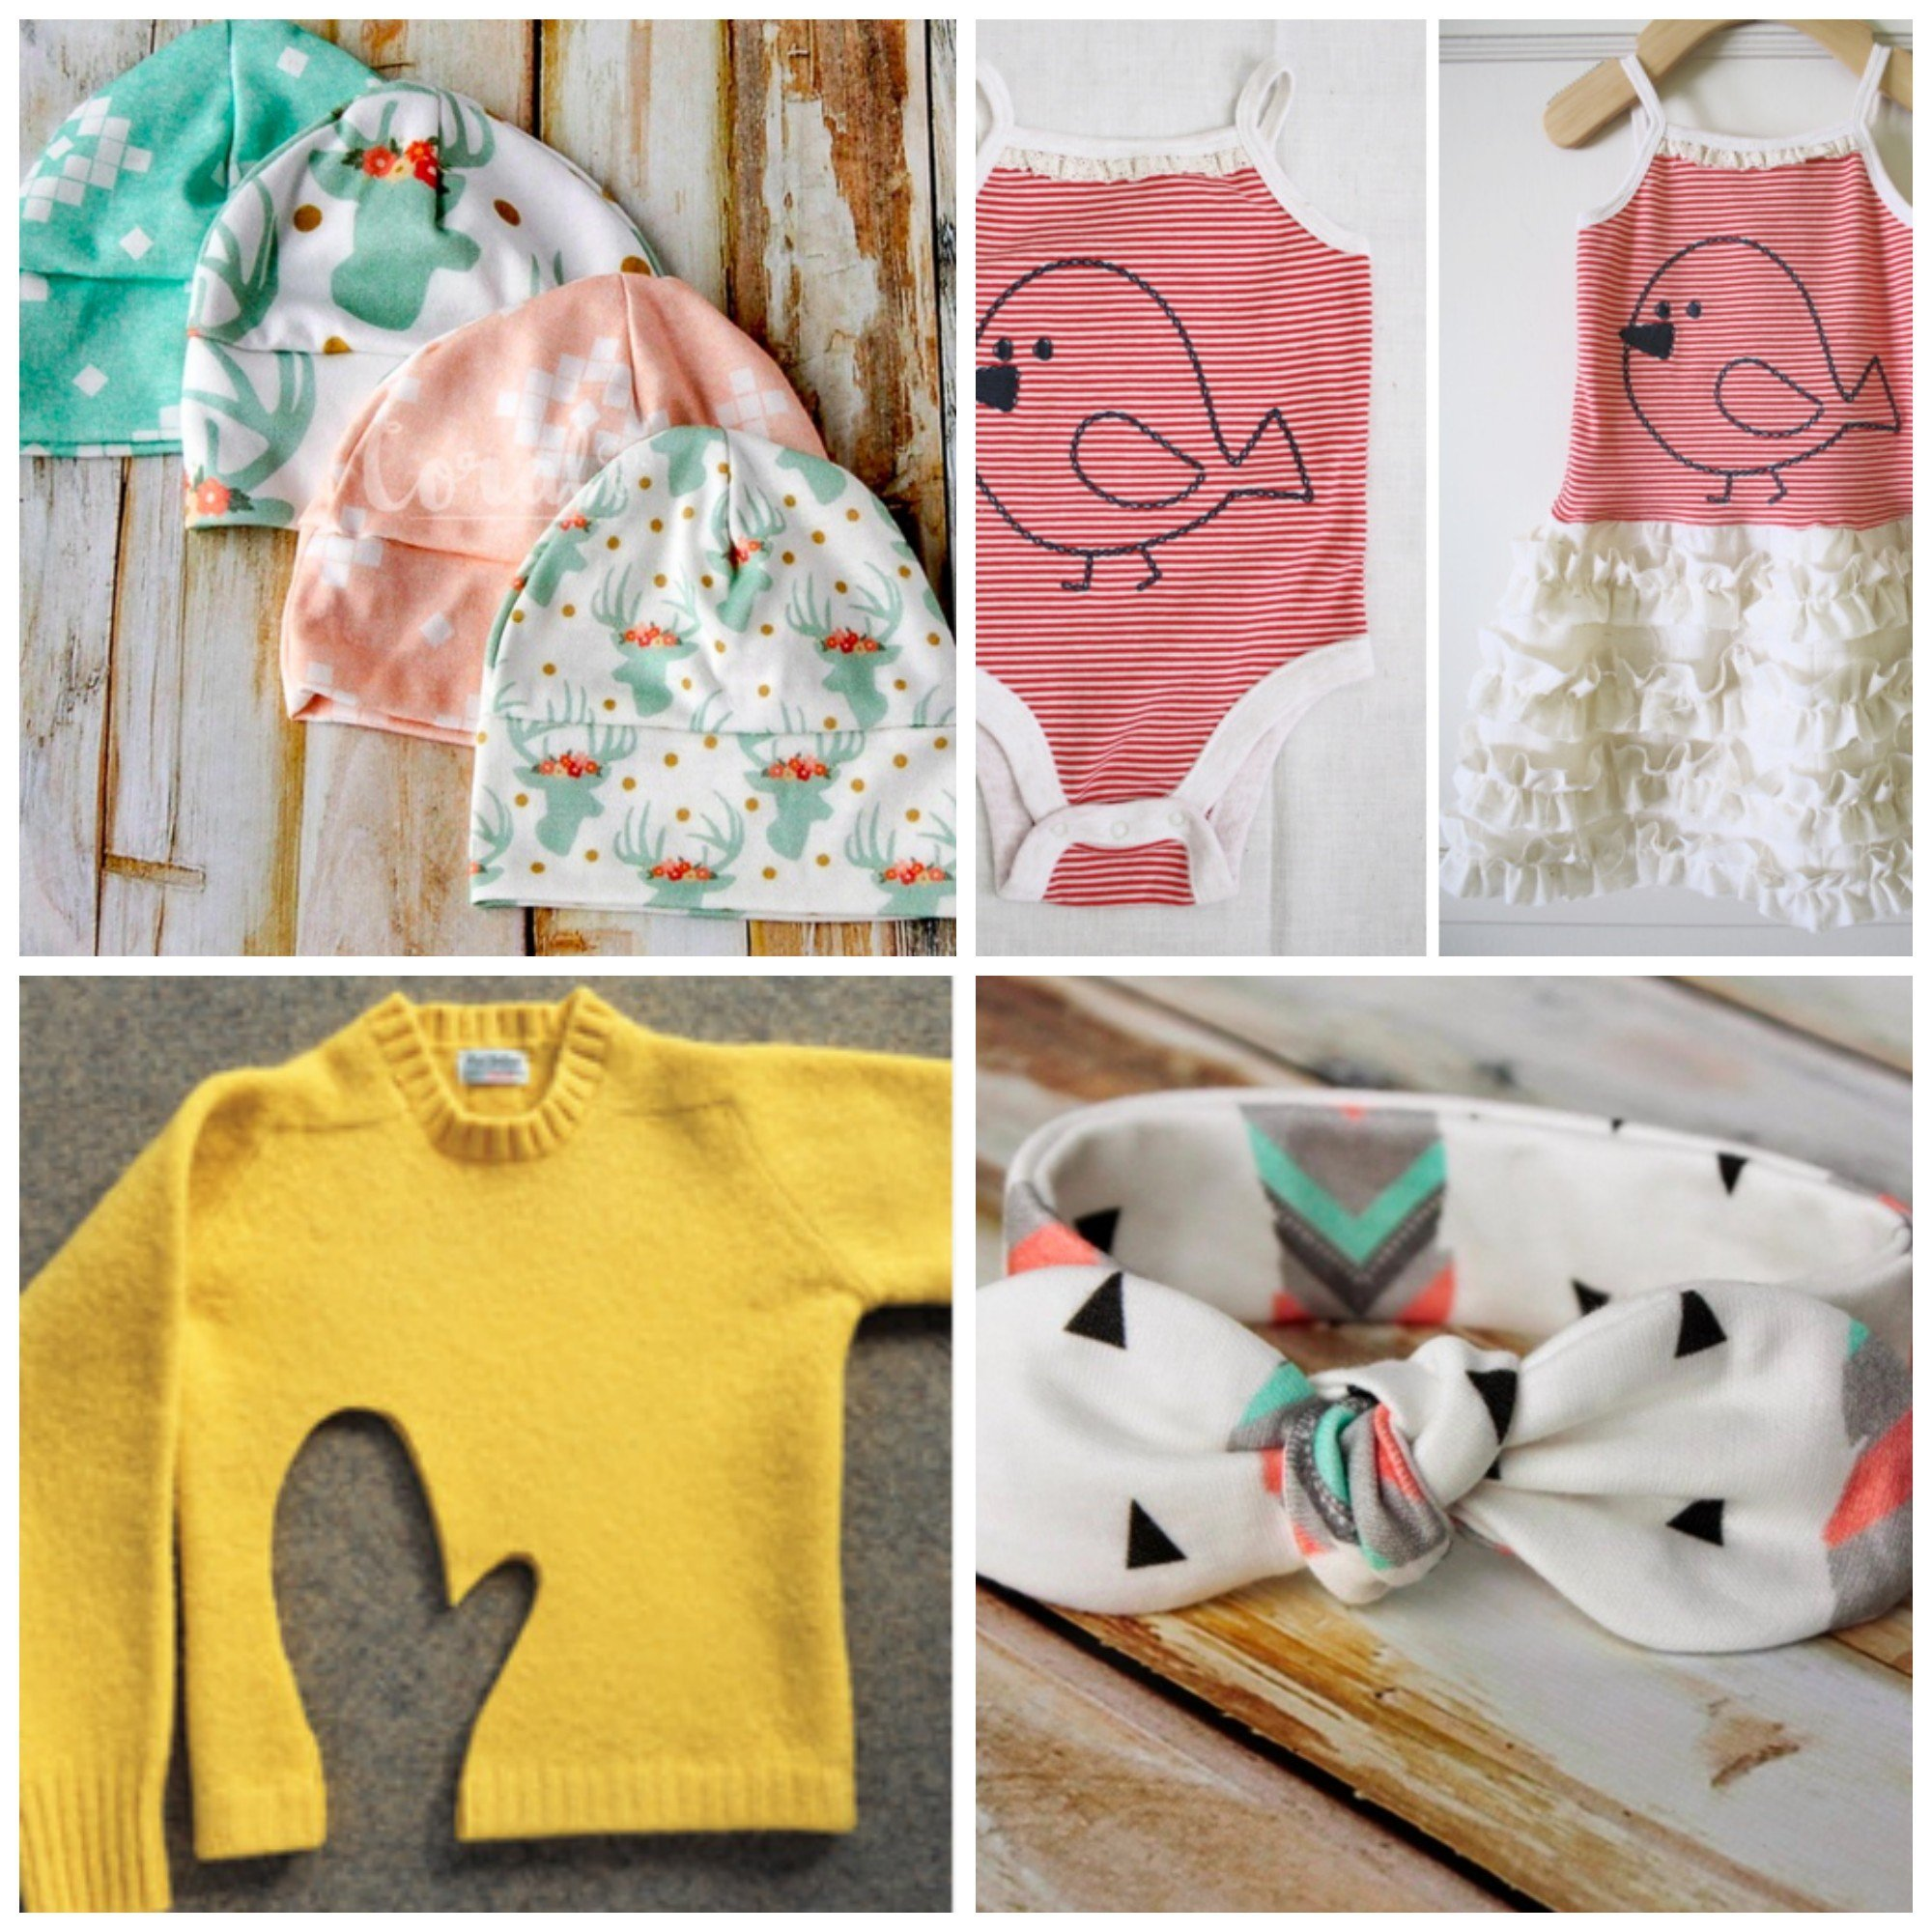 30 creative ways to reuse baby clothes